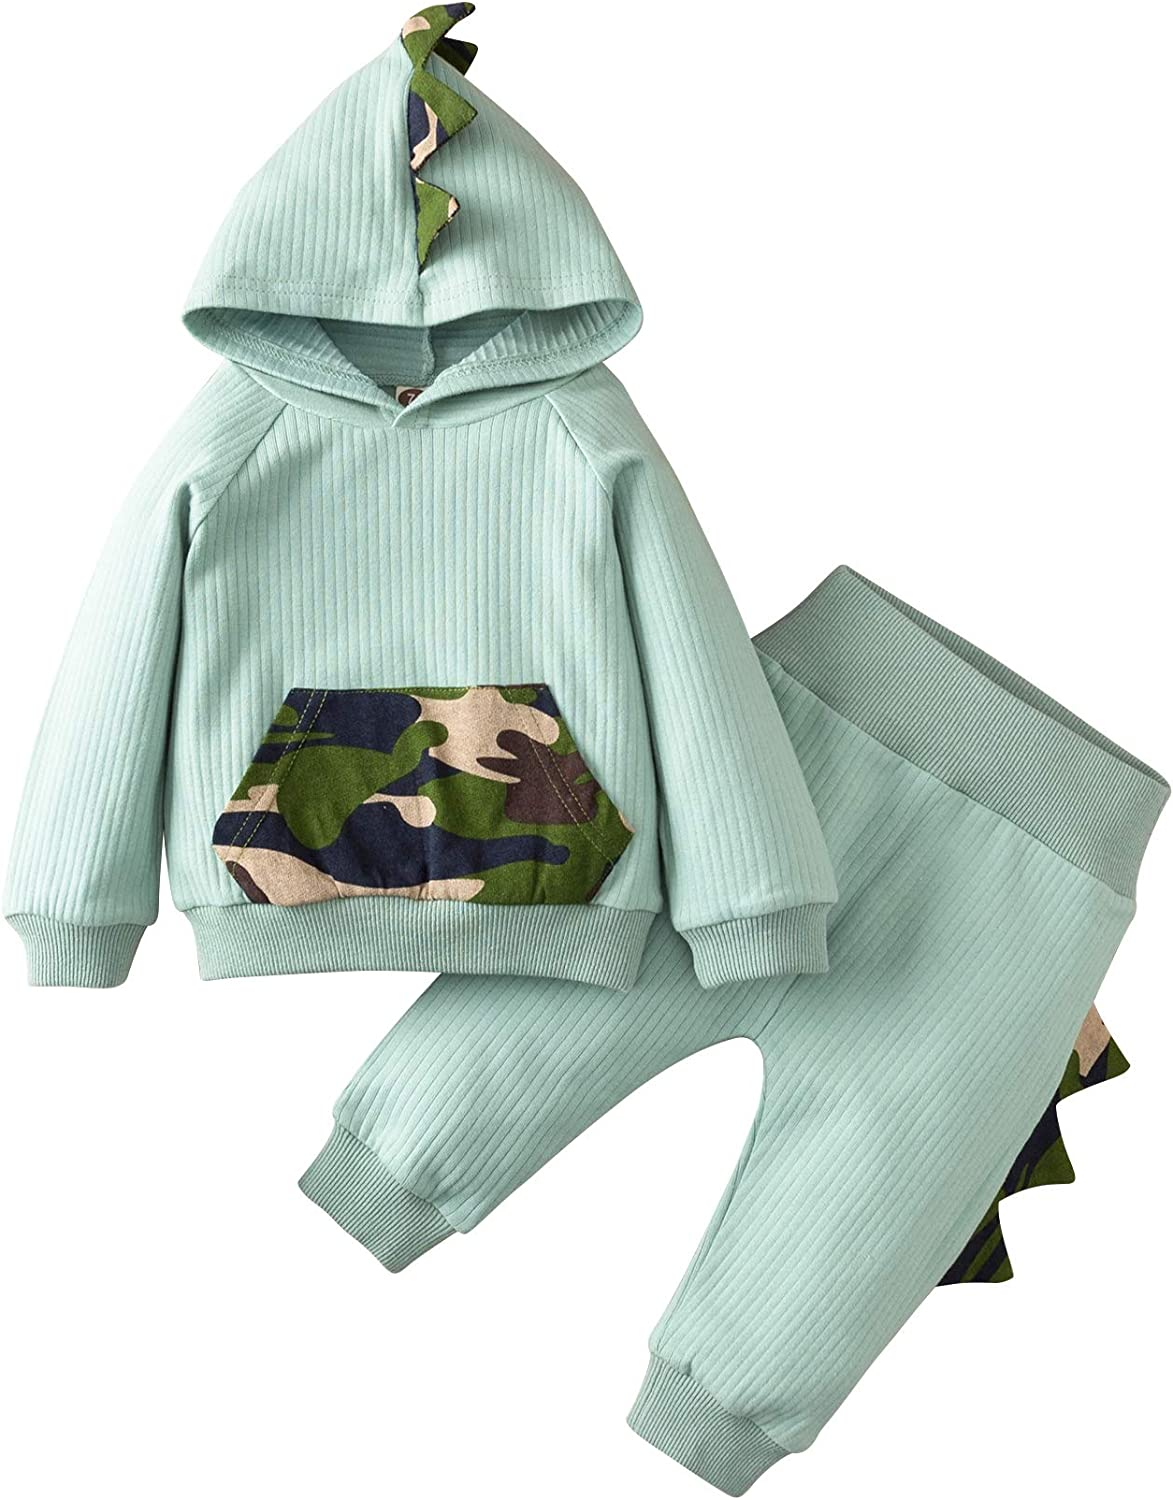 YHLZBNH Baby Hoodie Clothing Set Cute Warm Toddler Infant Fall Winter Unisex Cotton Outfits Dinosaur-Shape T-Shirt and Pants